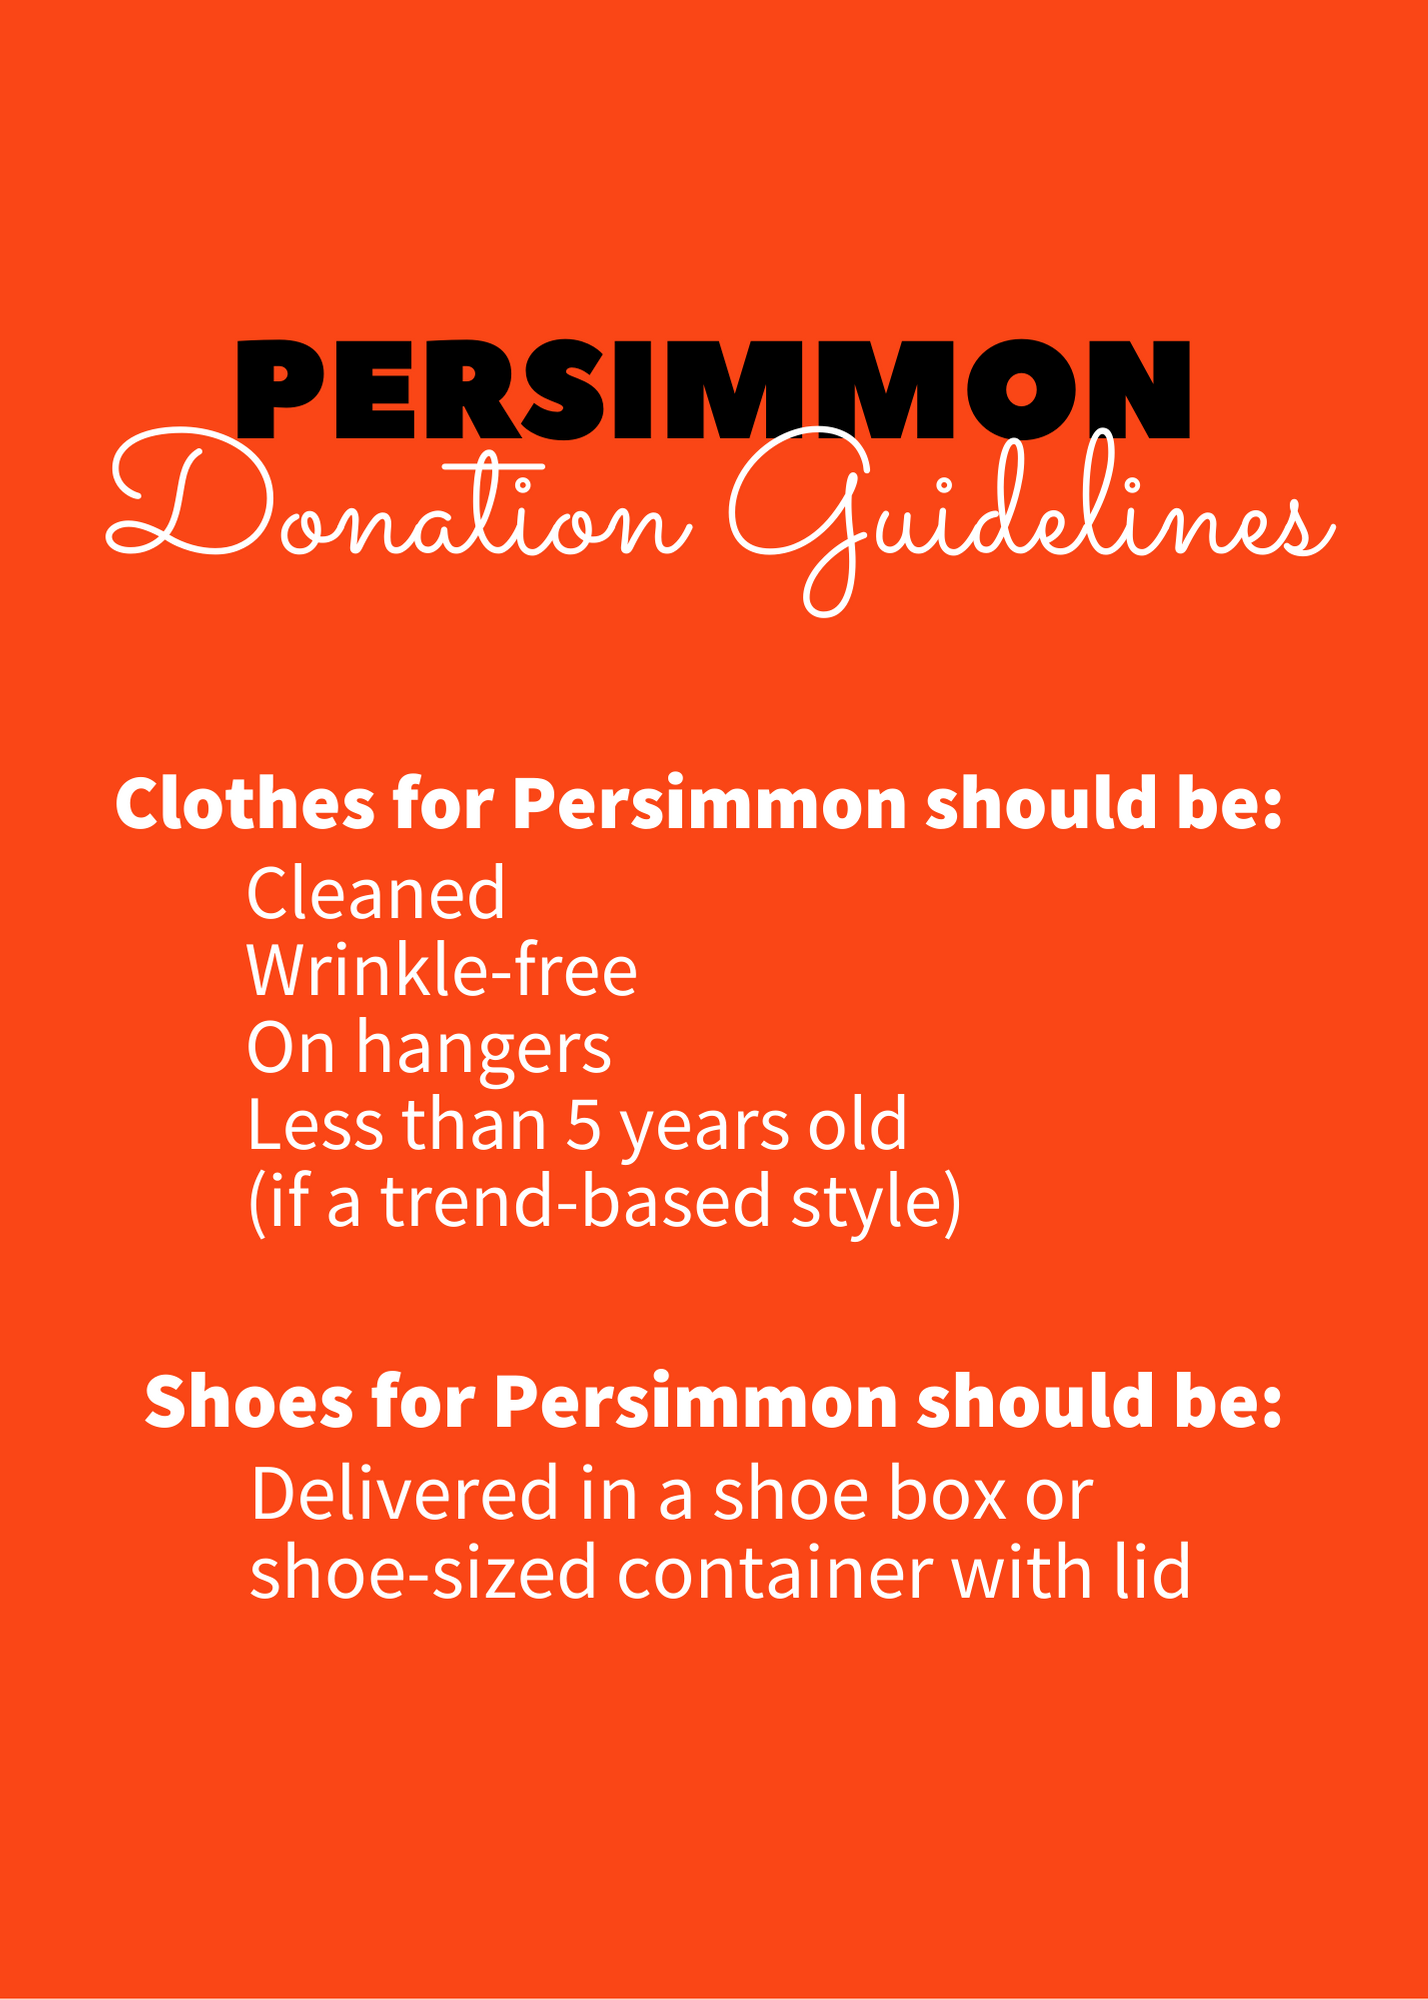 "Orange background with black and white text: ""Persimmon Donation Guidelines: Clothes for persimmon s hould be cleaned, wrinkle-free, on hangers, and less than 5 years old (if a trend-based style). Shoes for persimmon should be delivered in a shoe box for shoe-sized container with lid."